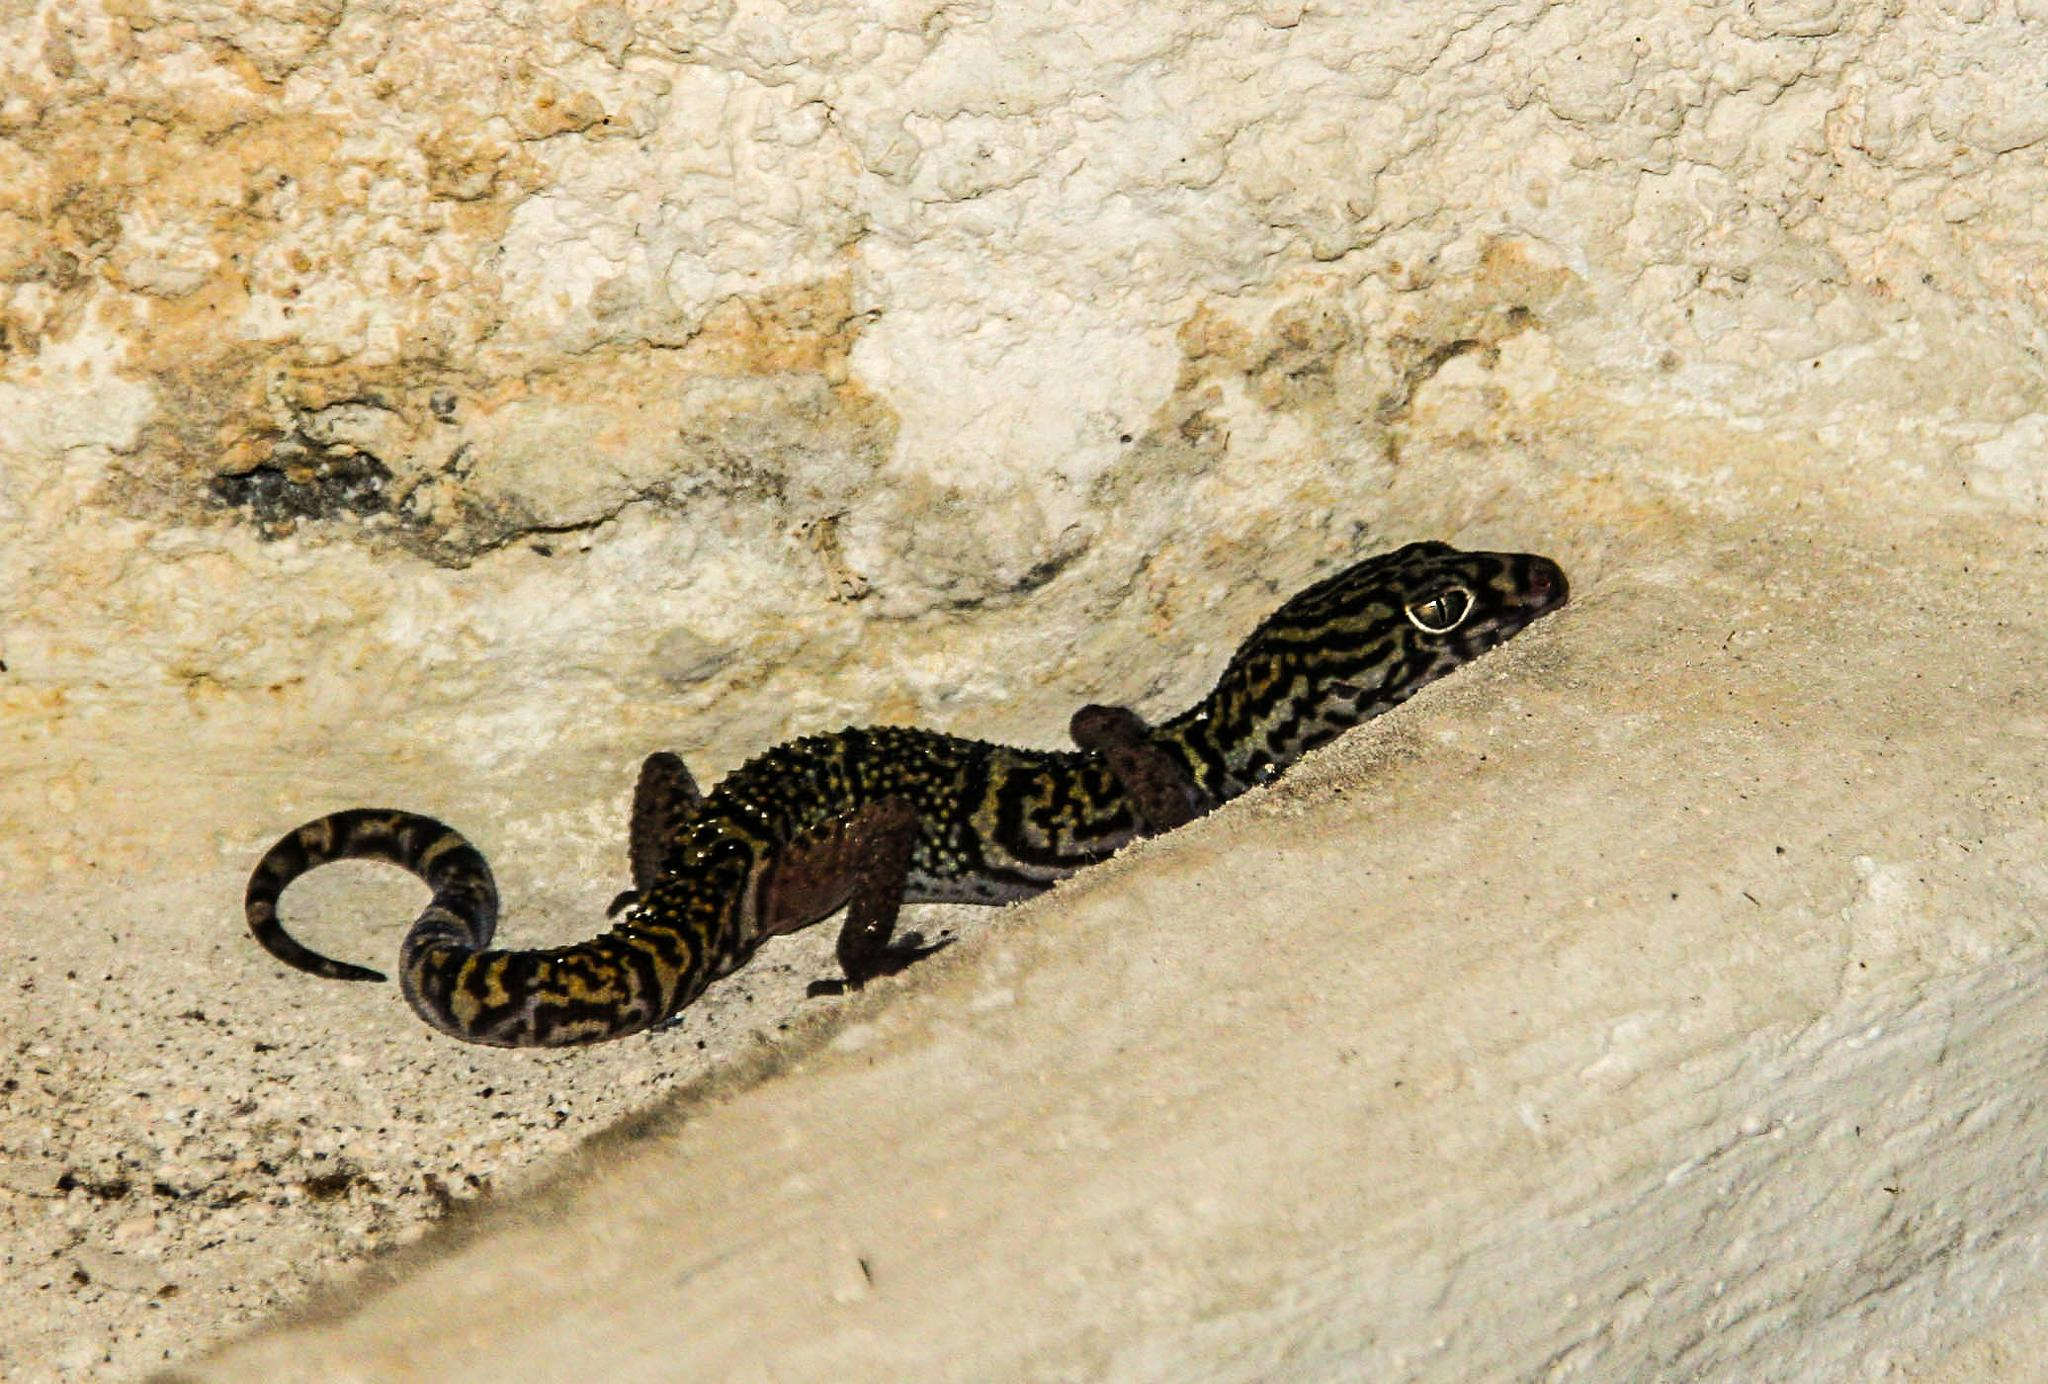 Mexican lizard by fotografdenise